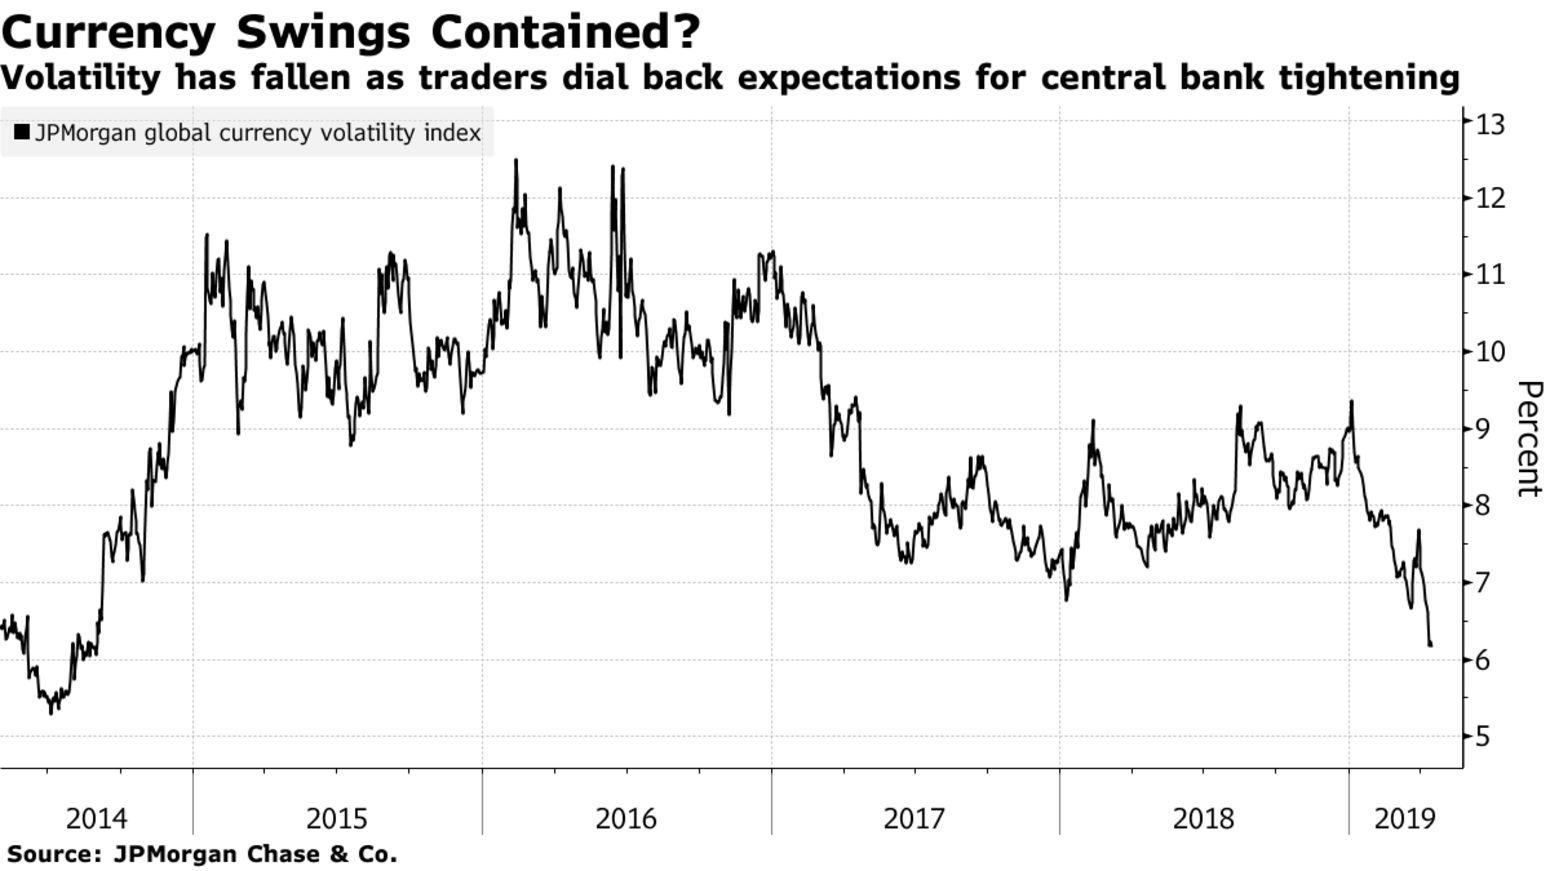 Volatility has fallen as traders dial back expectations for central bank tightening